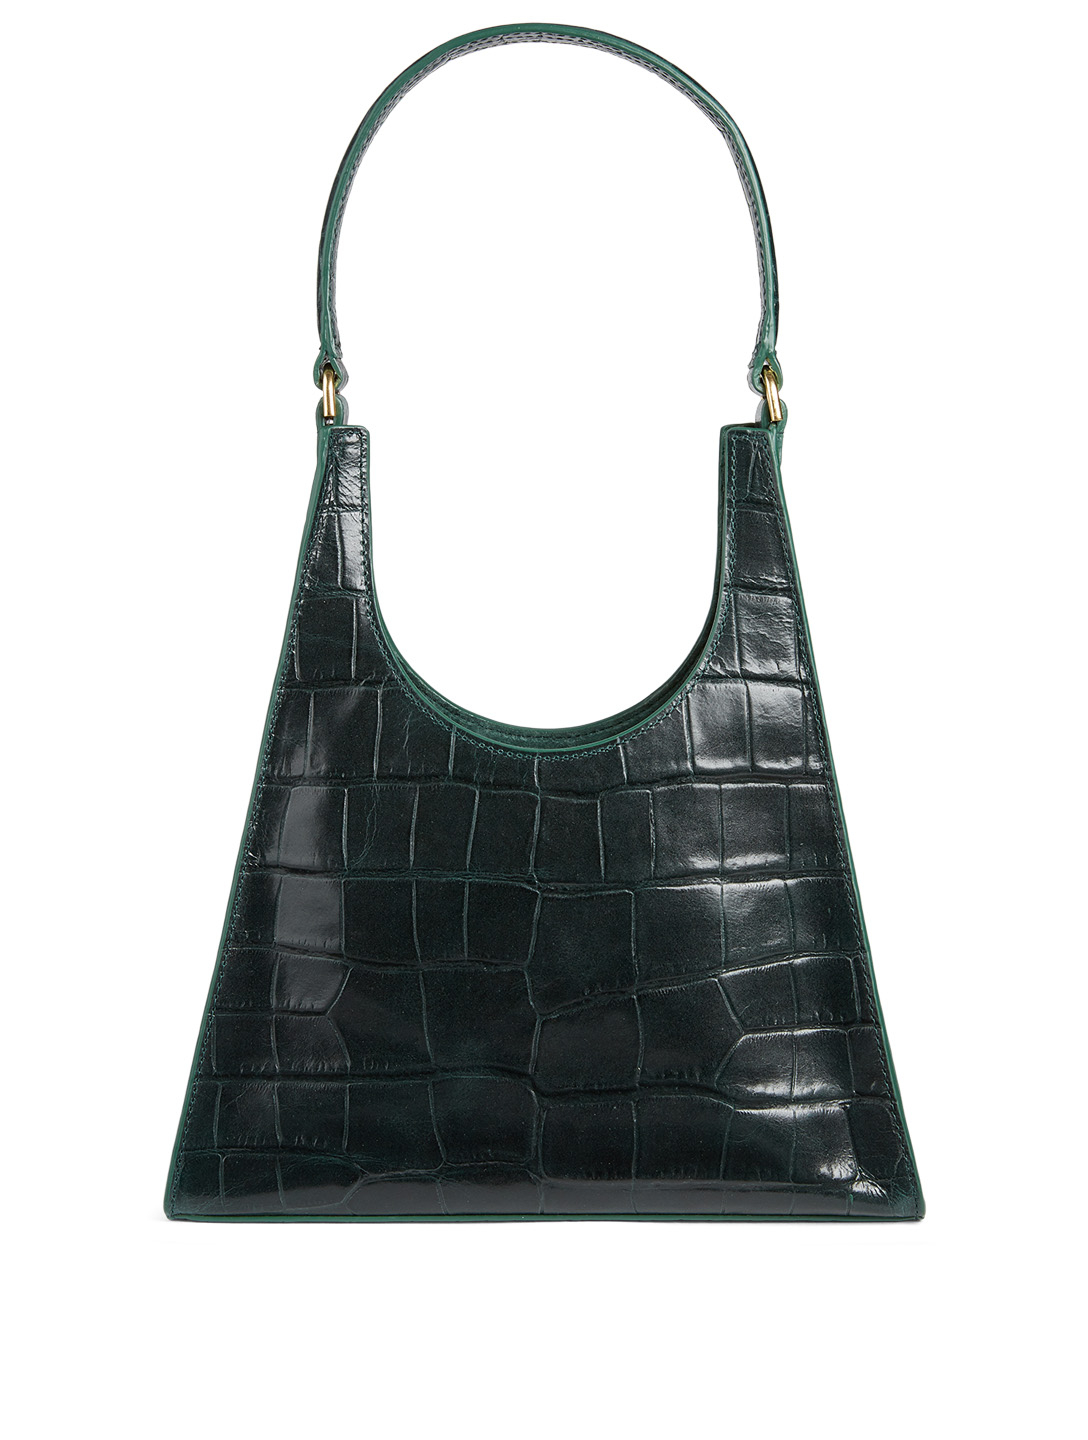 STAUD Small Rey Croc-Embossed Leather Bag Women's Green